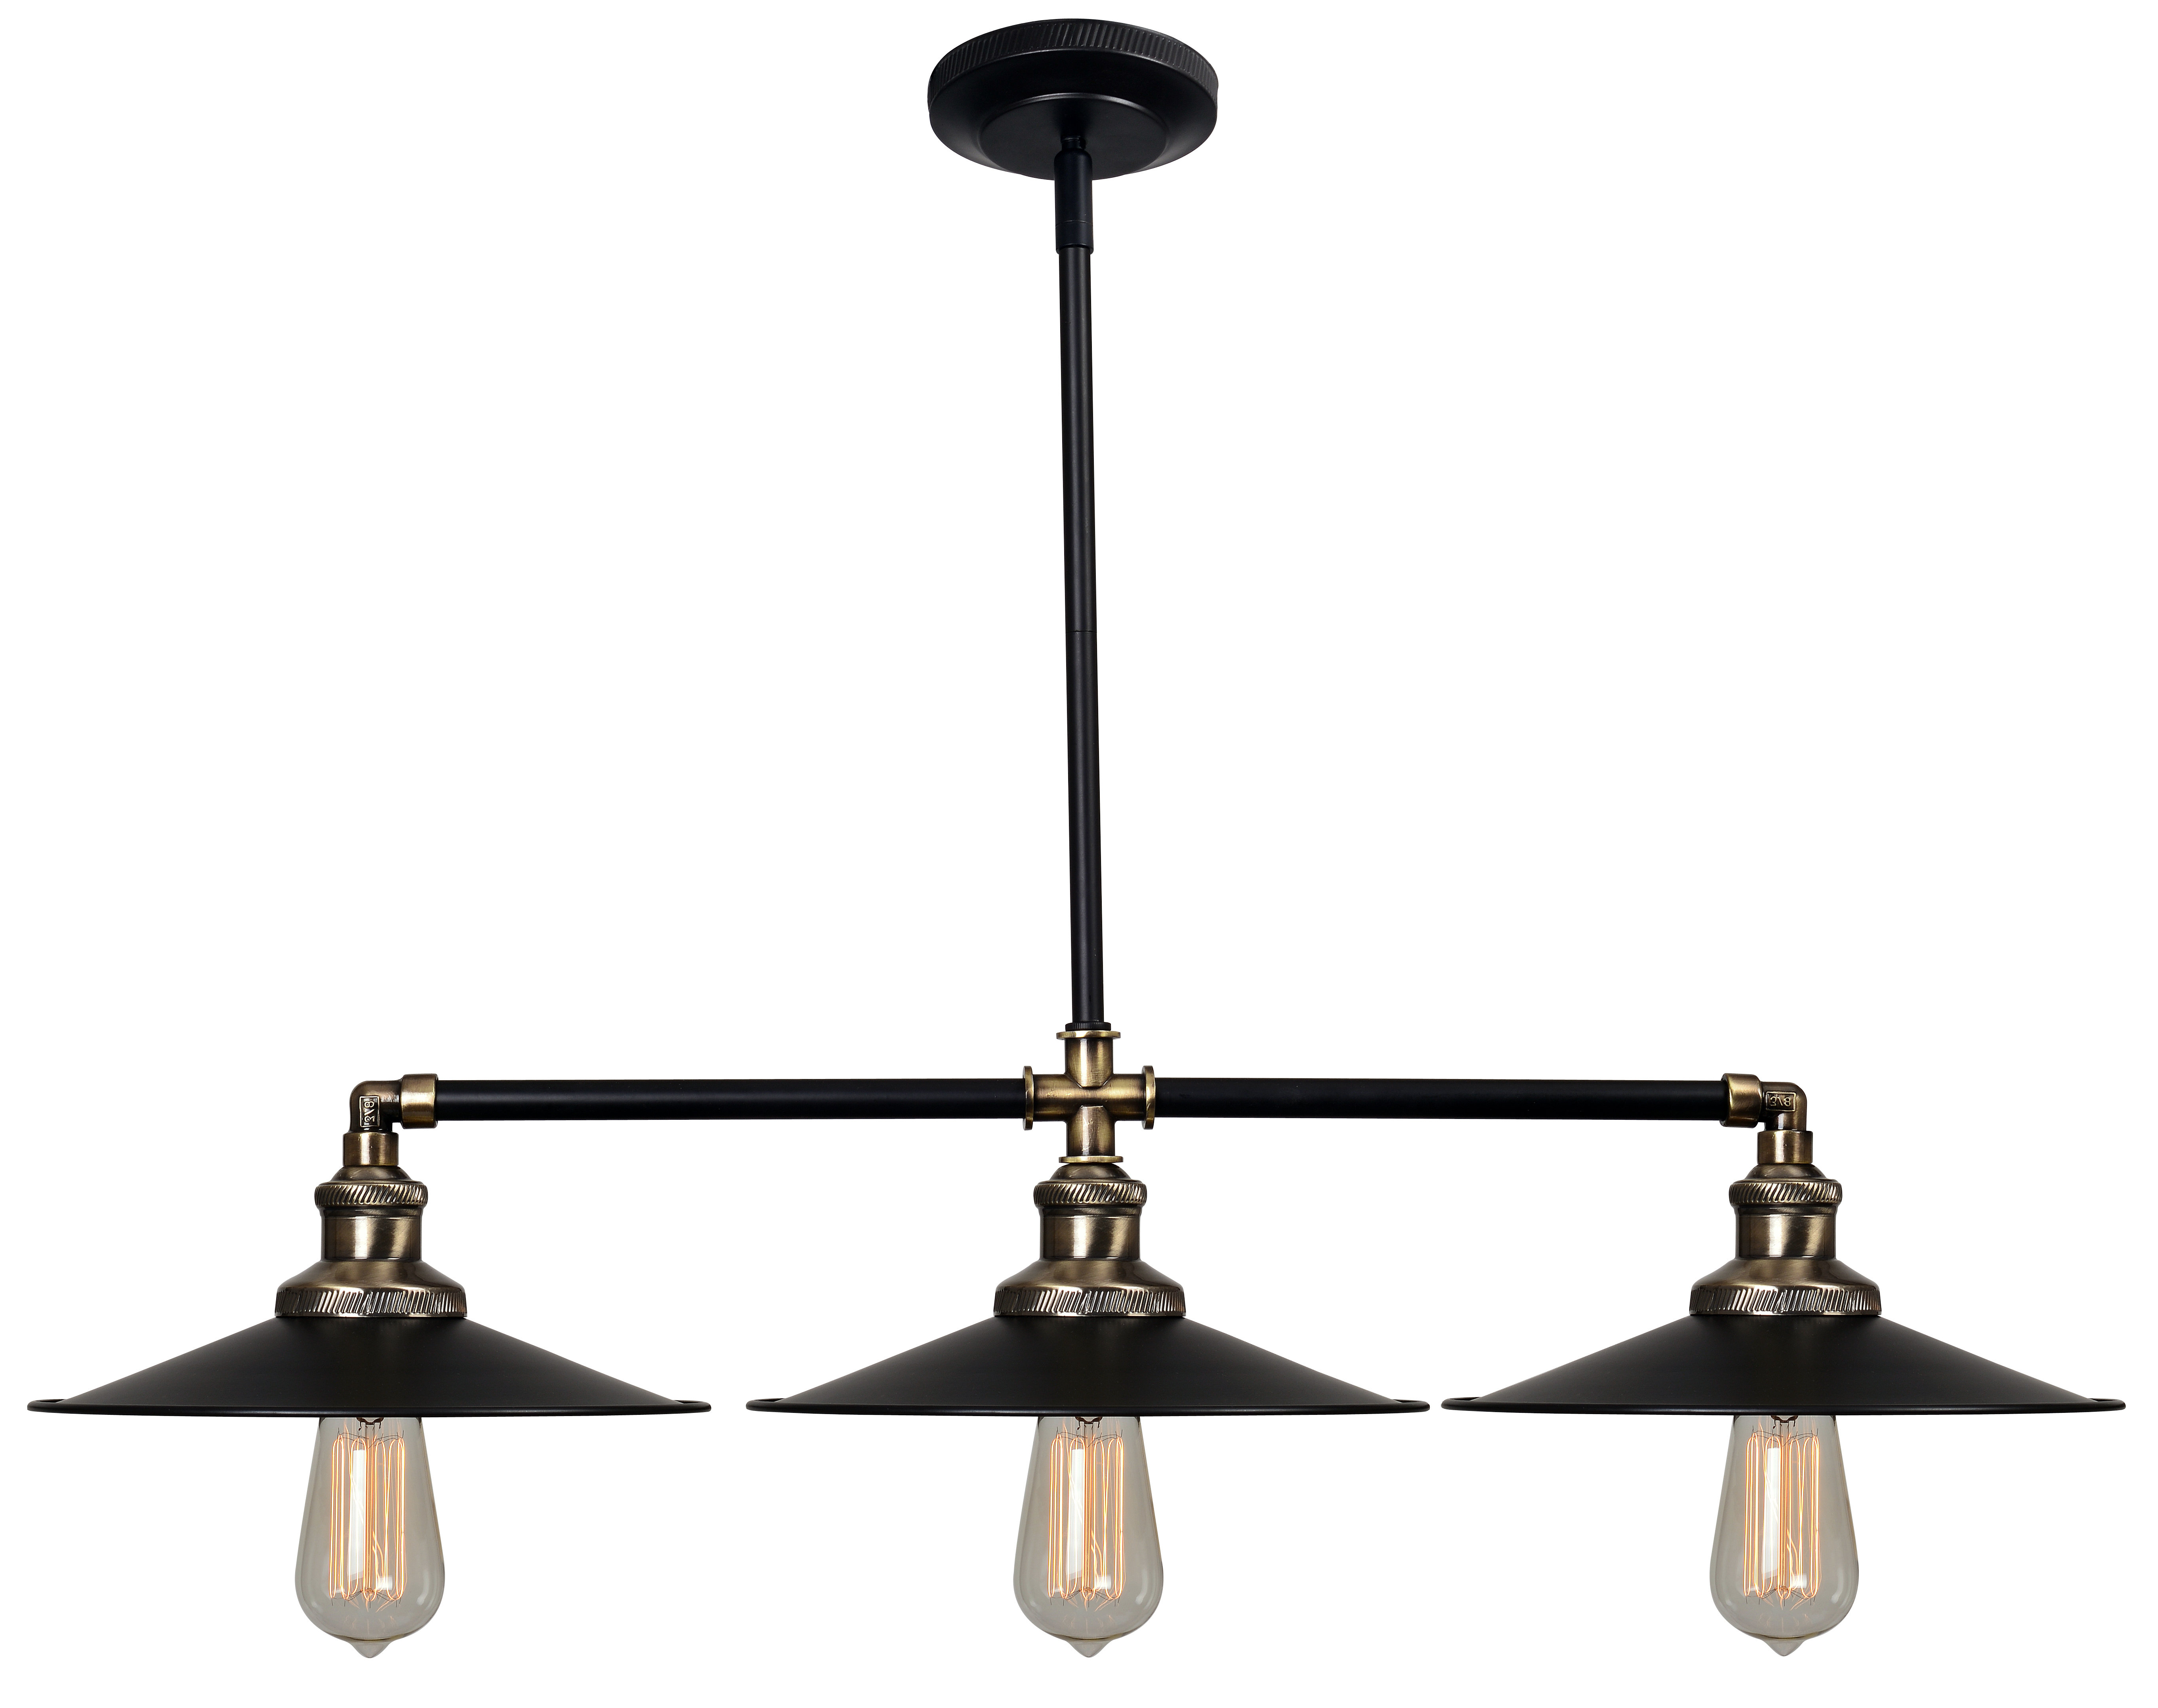 Well Liked Euclid 2 Light Kitchen Island Linear Pendants With Regard To Dobson 3 Light Kitchen Island Linear Pendant (View 5 of 25)